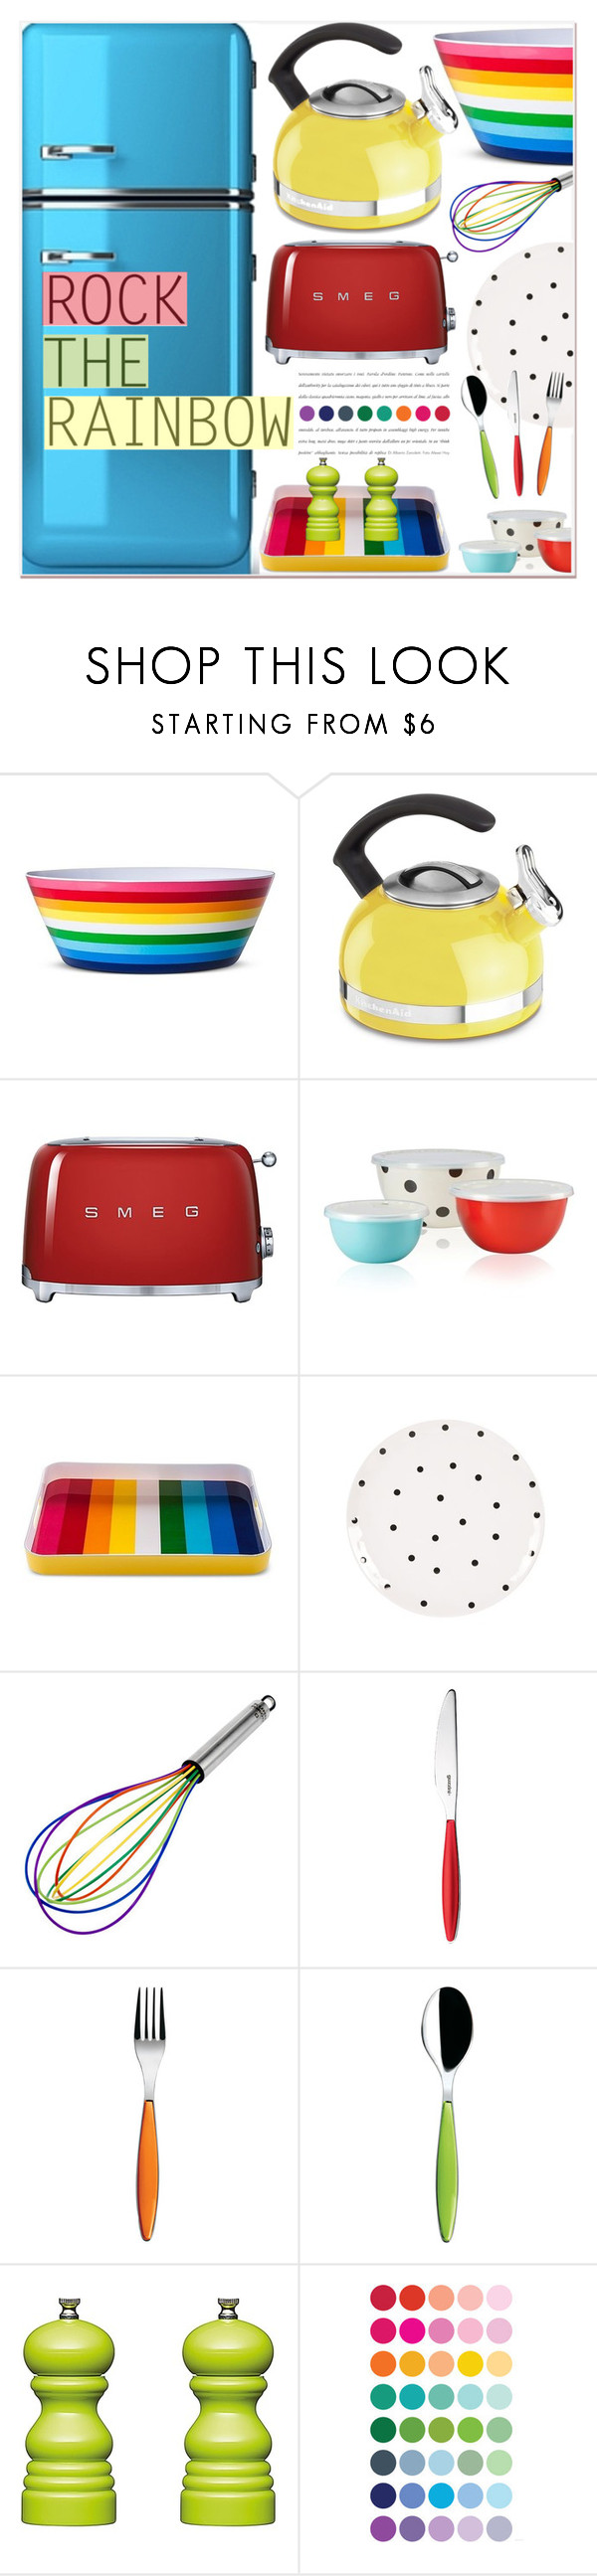 """""""Rock The Rainbow"""" by chloe ❤ liked on Polyvore featuring interior, interiors, interior design, home, home decor, interior decorating, KitchenAid, Smeg, Kate Spade and Fitz and Floyd"""